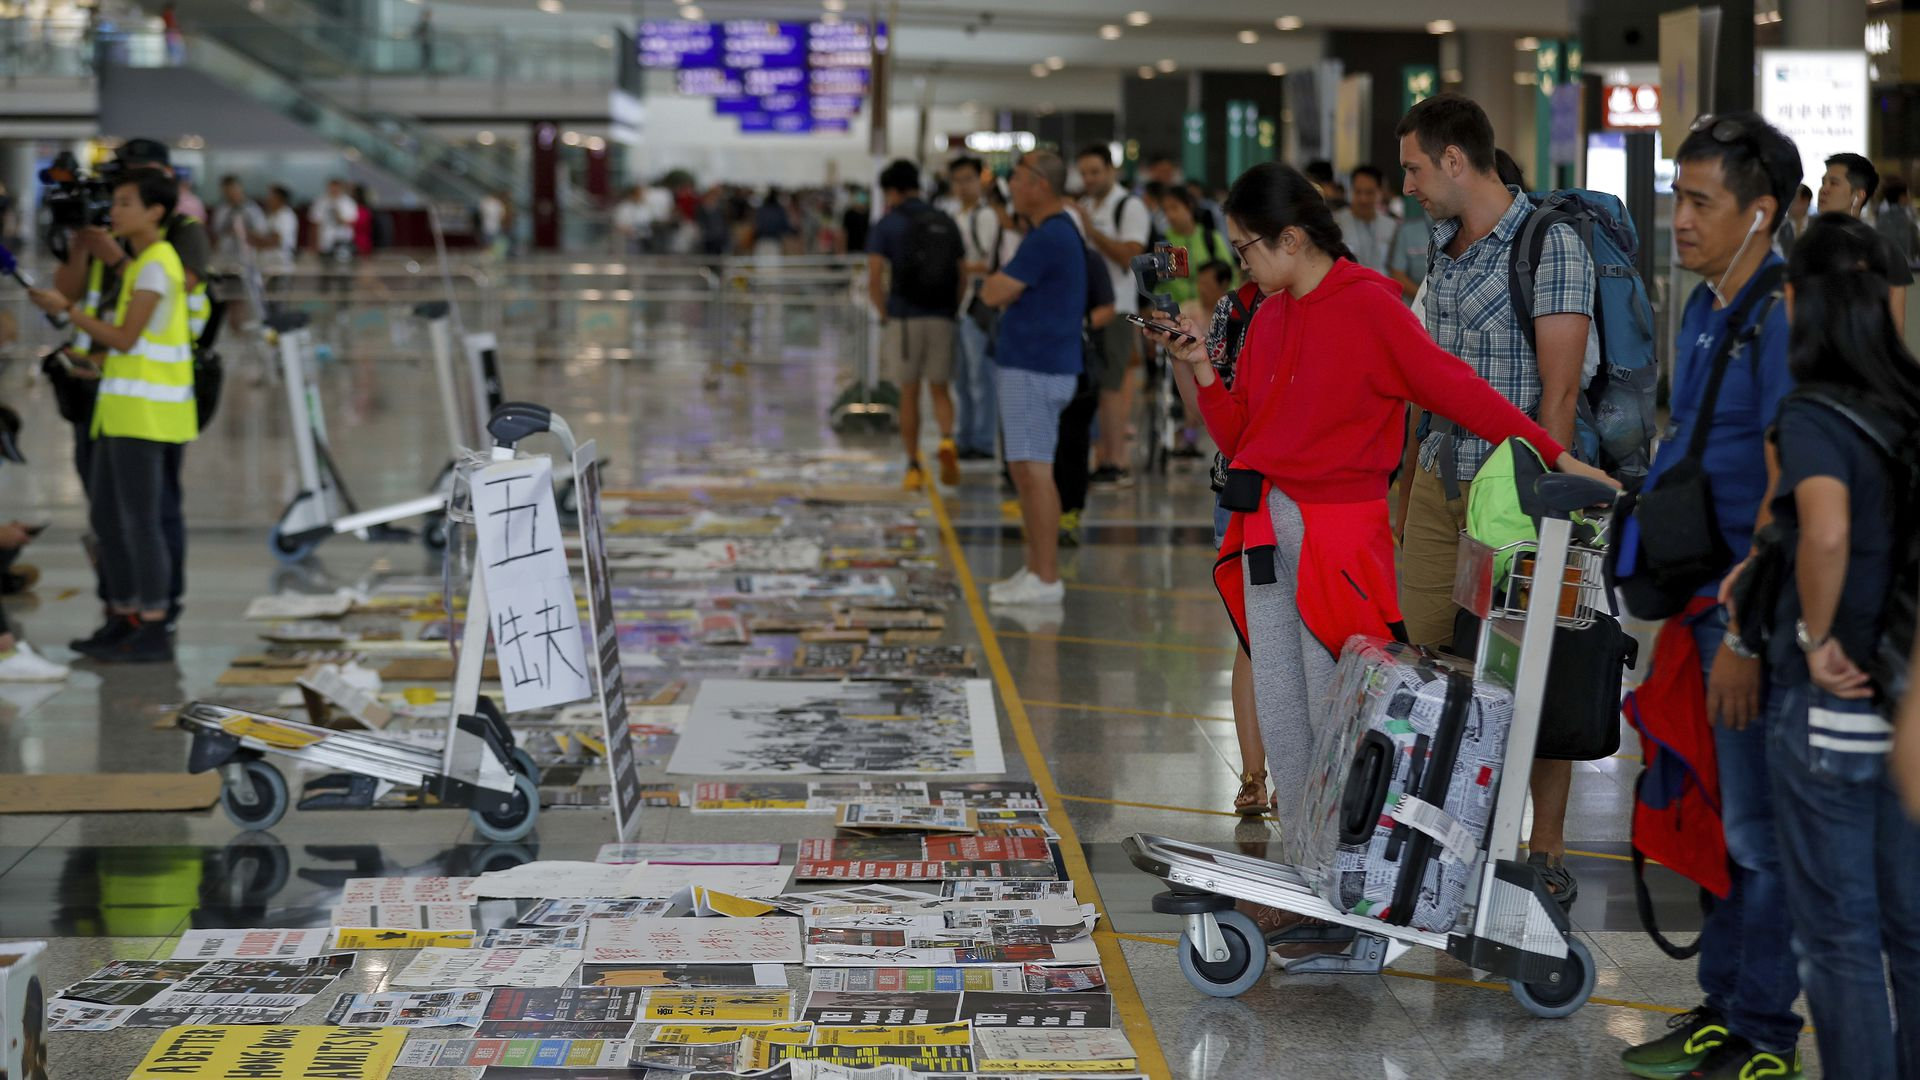 Travellers look at placards and posters placed by protesters at the airport in Hong Kong